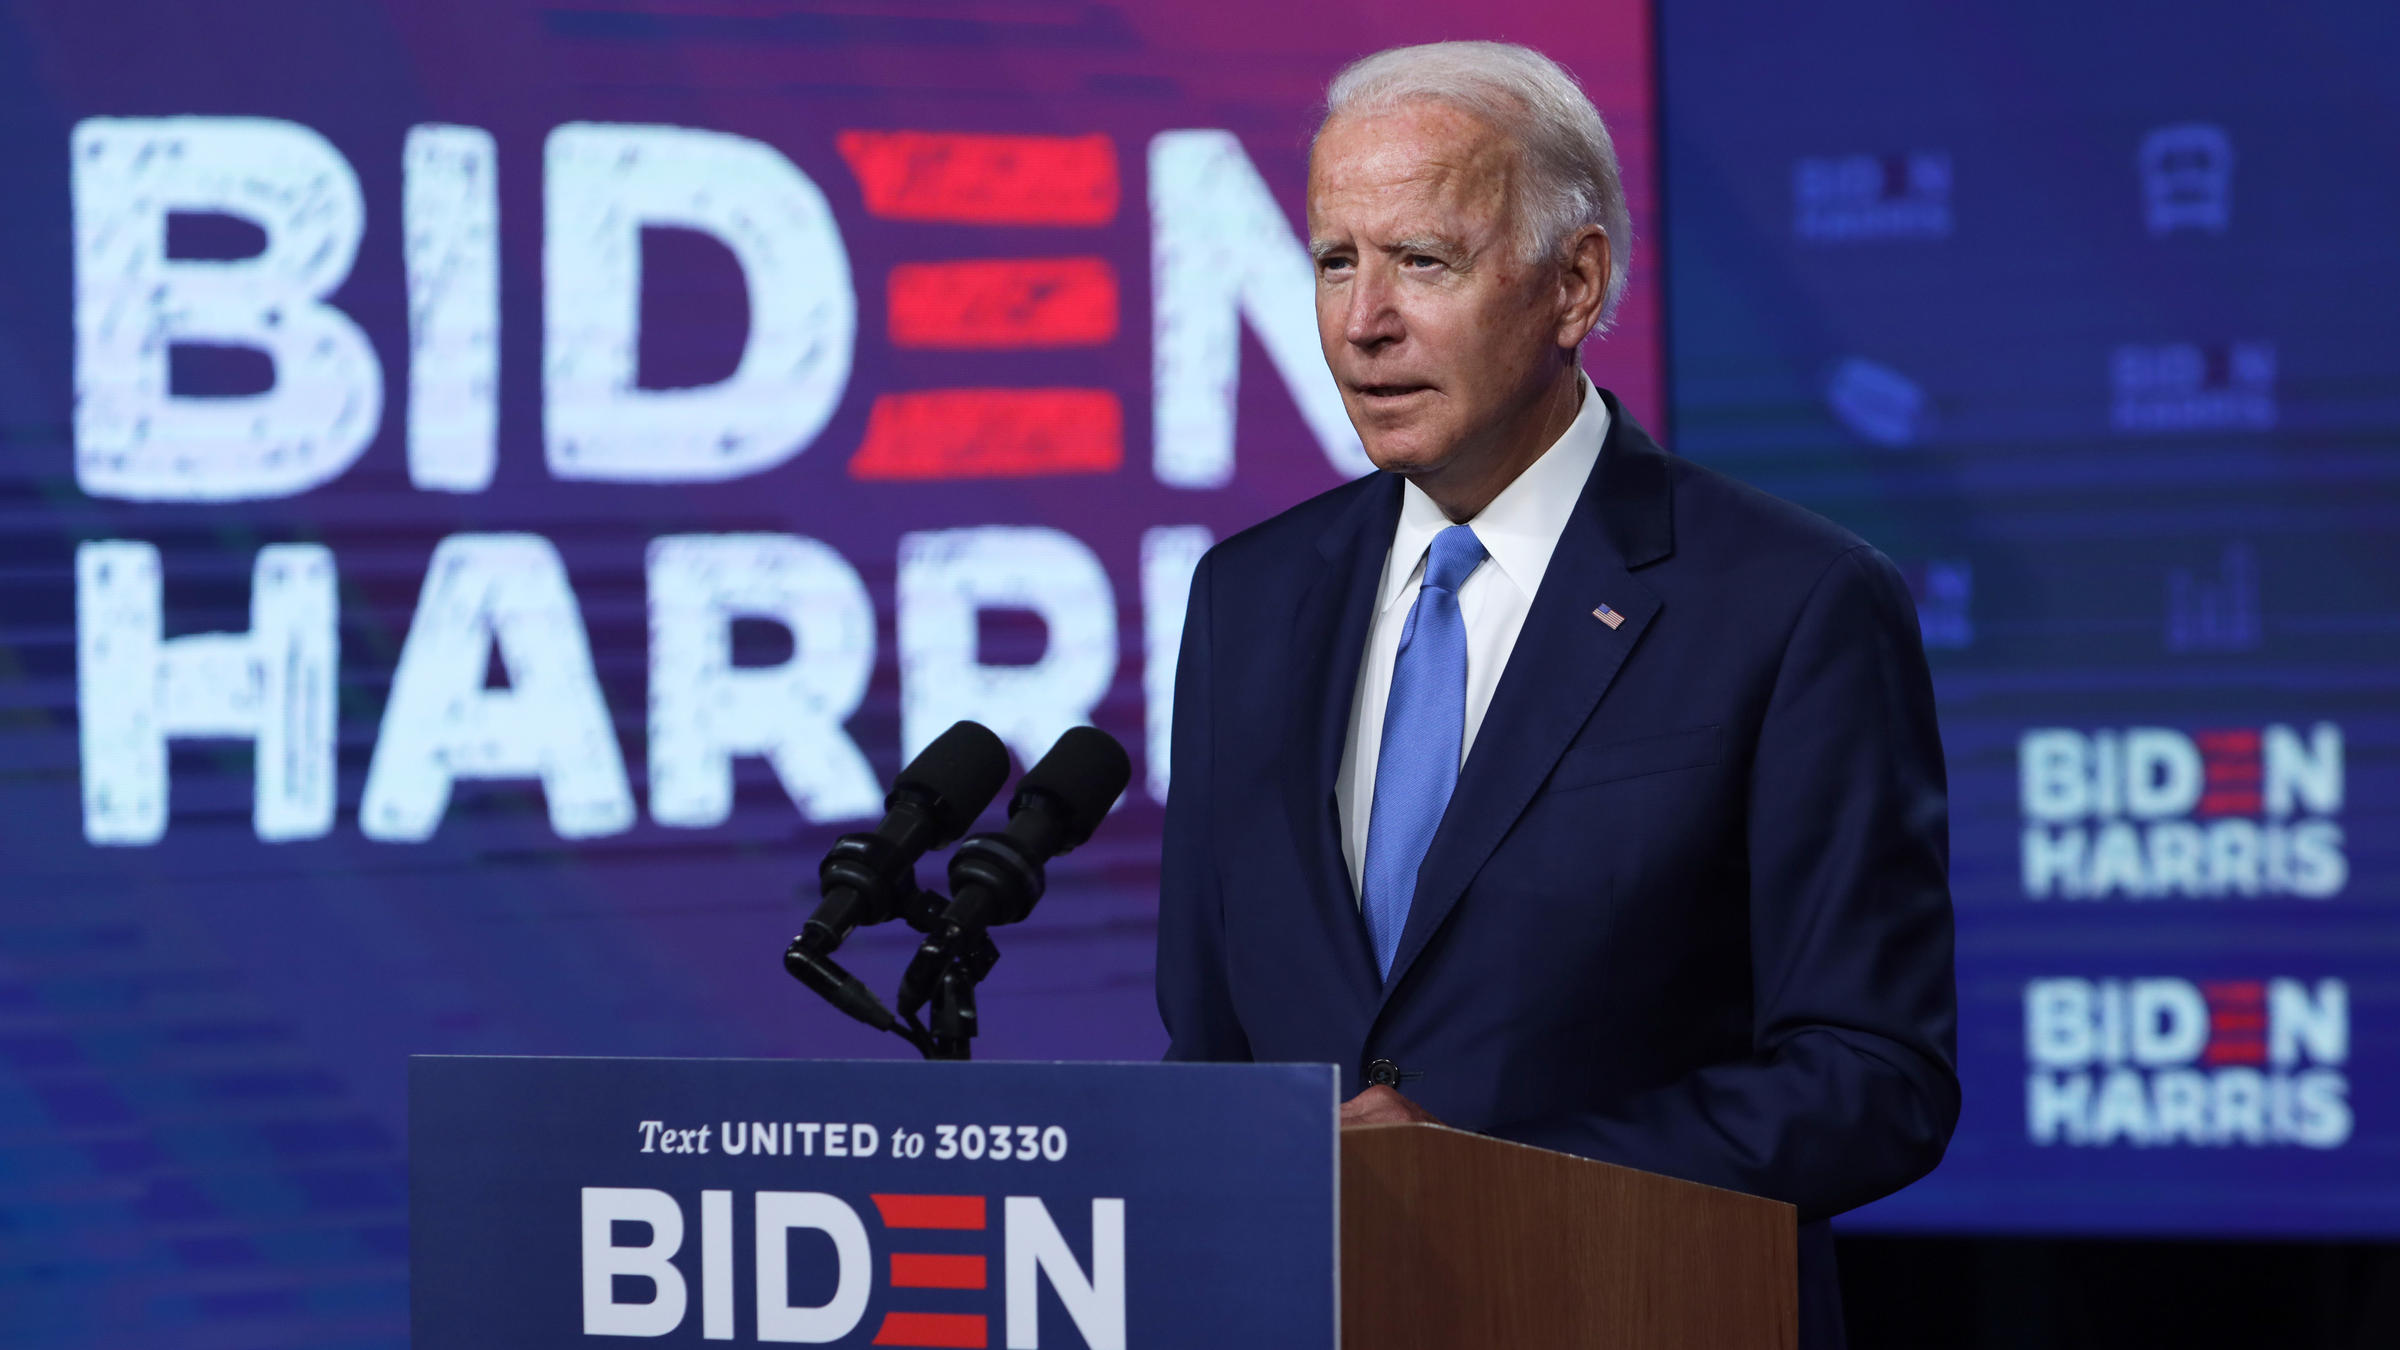 Biden bound for Kenosha as he ramps up campaign